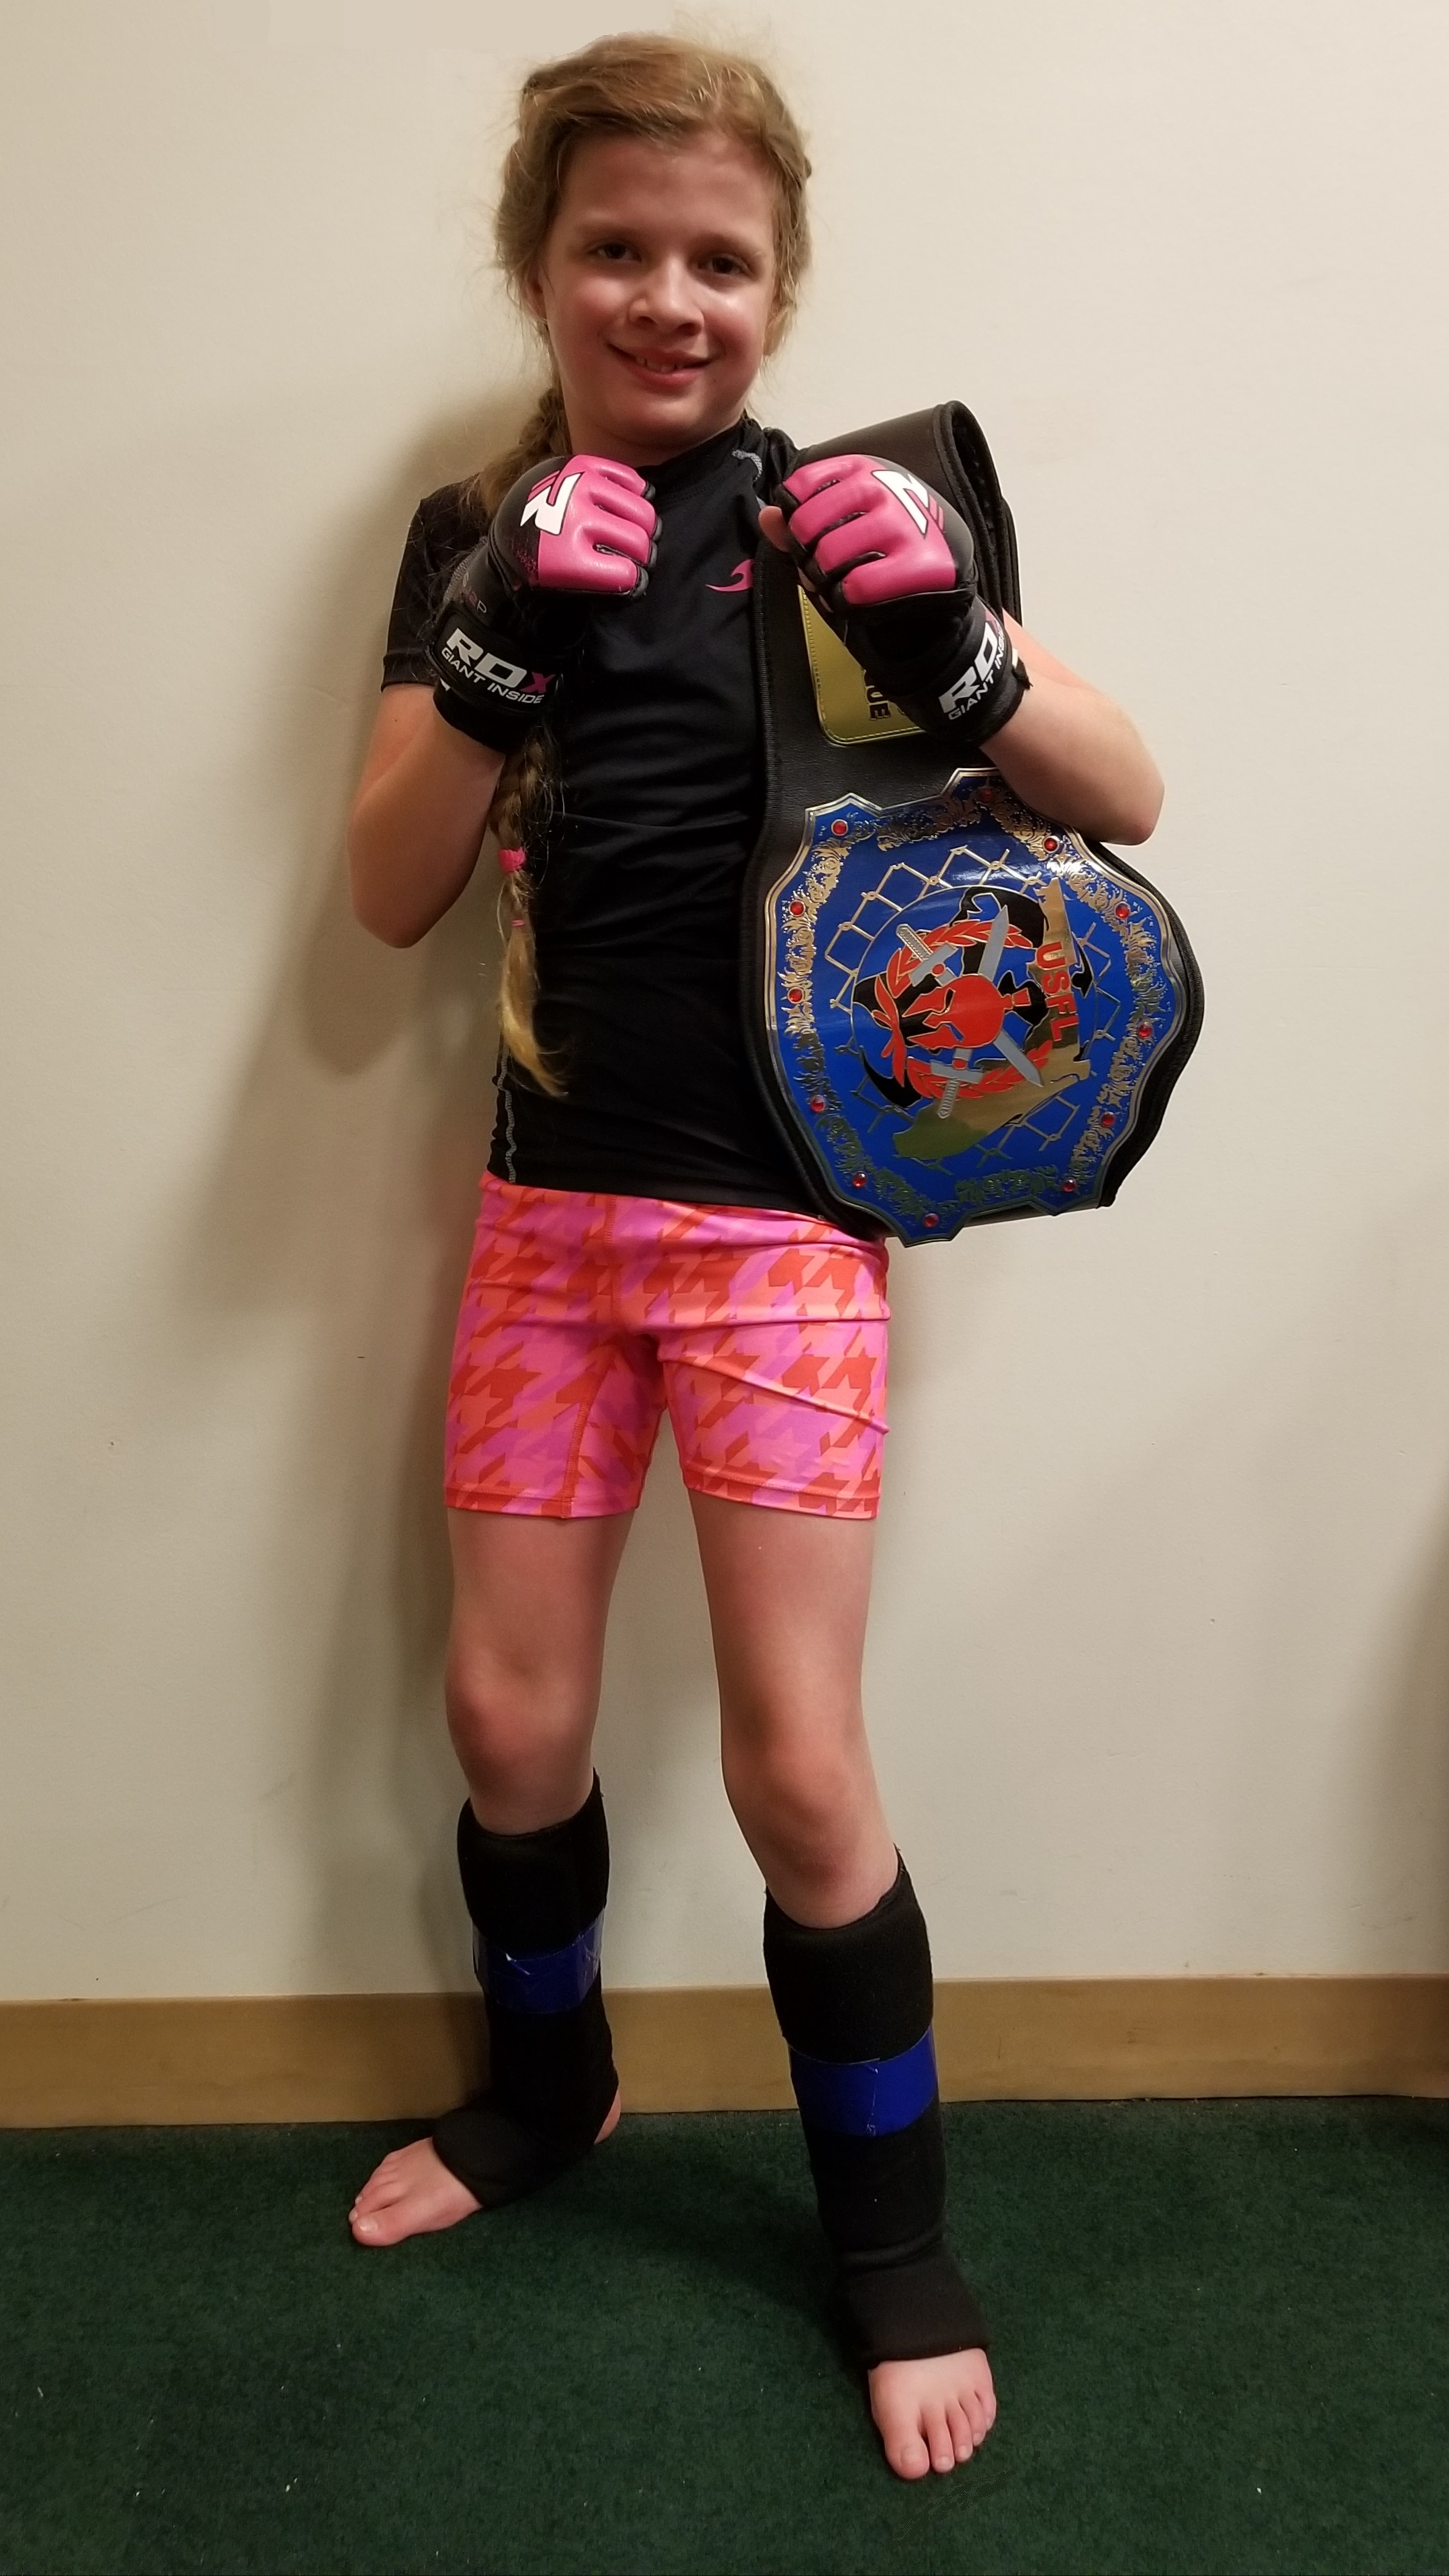 Danielle Connors at USFL Sport MMA